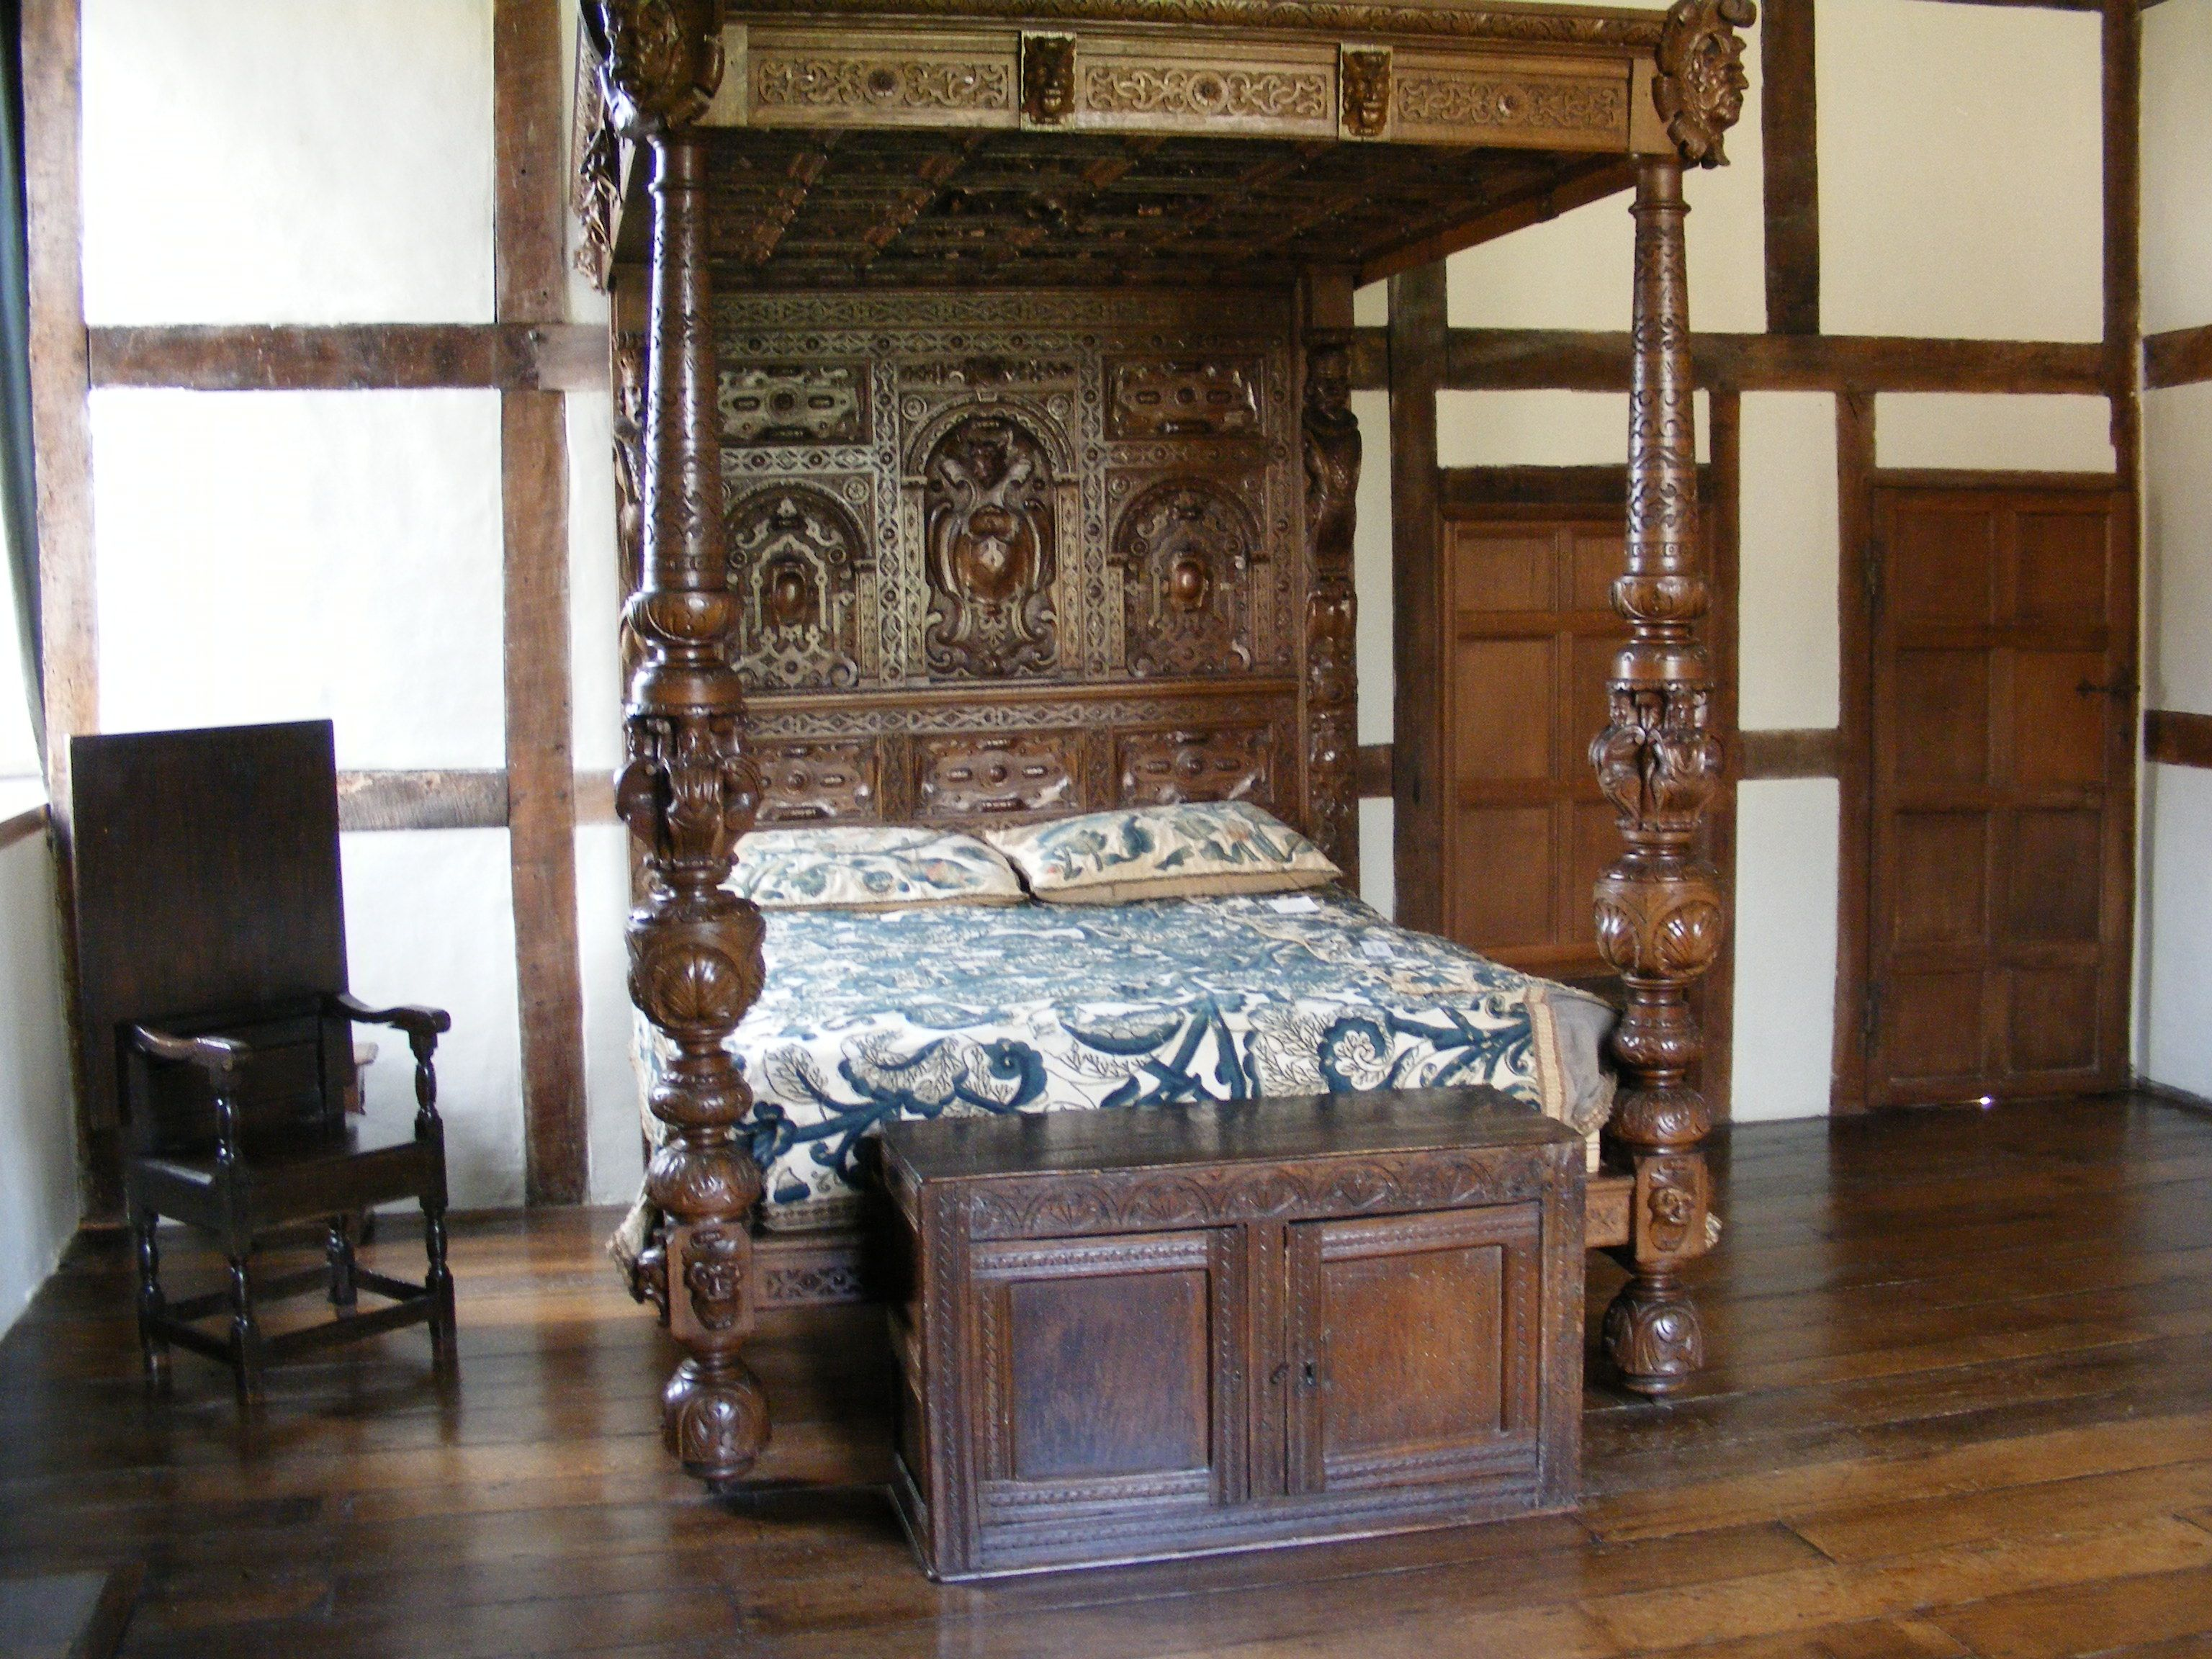 Medieval Bedroom Design Breamore House ~ Tudor Bedroom In Tudor Part Of The Home Tudor